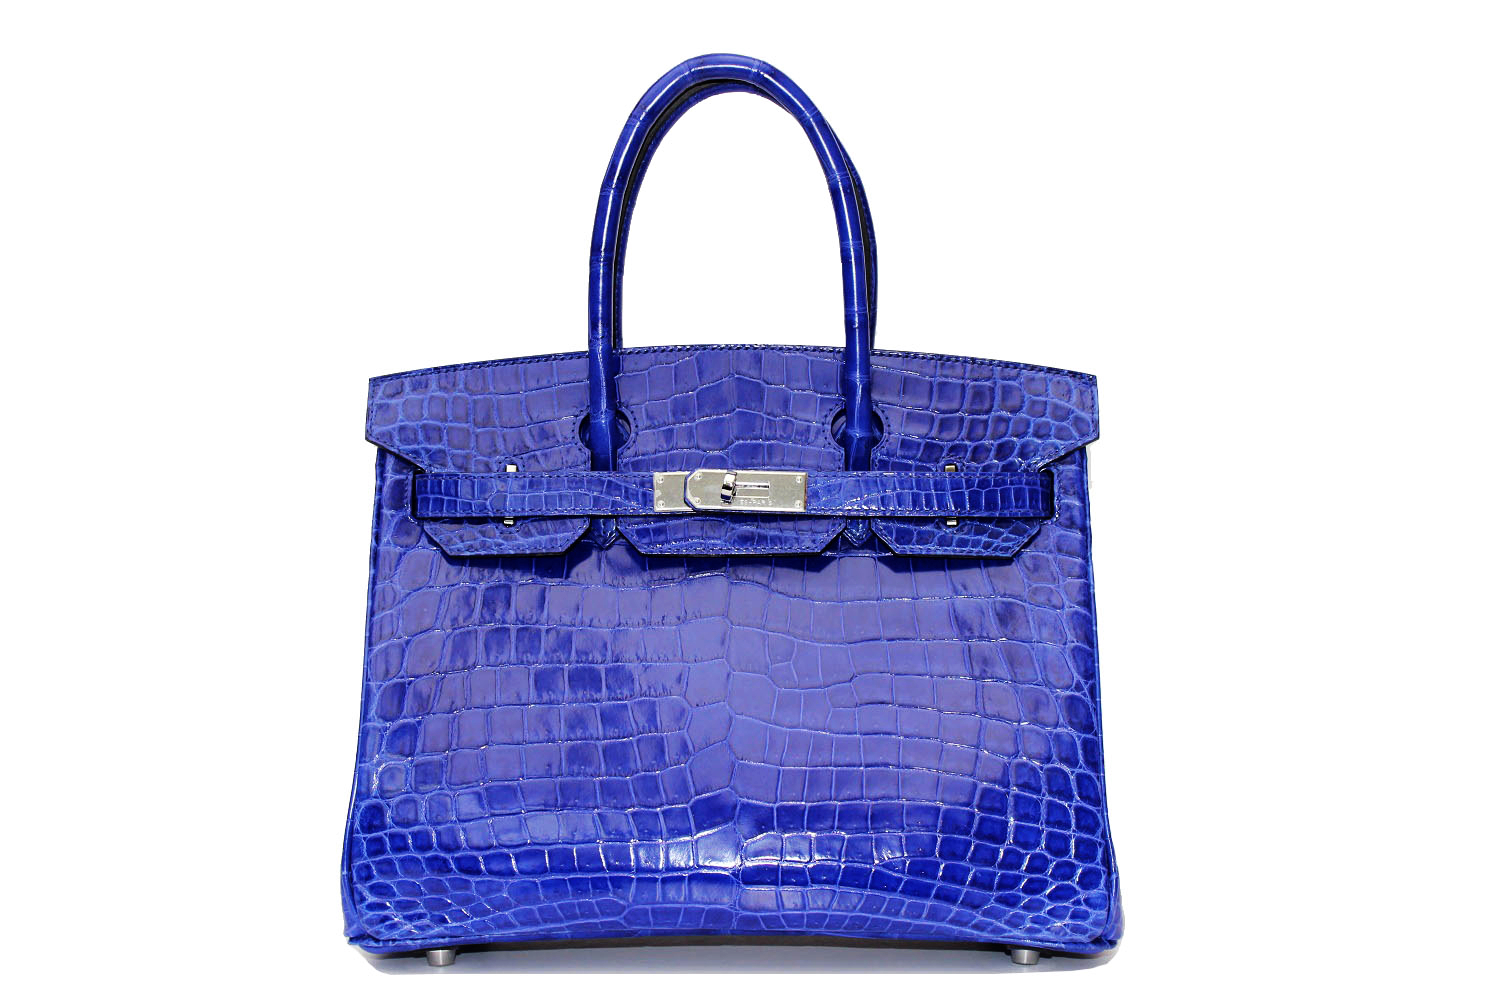 A croc Birkin can fetch over $100,000.